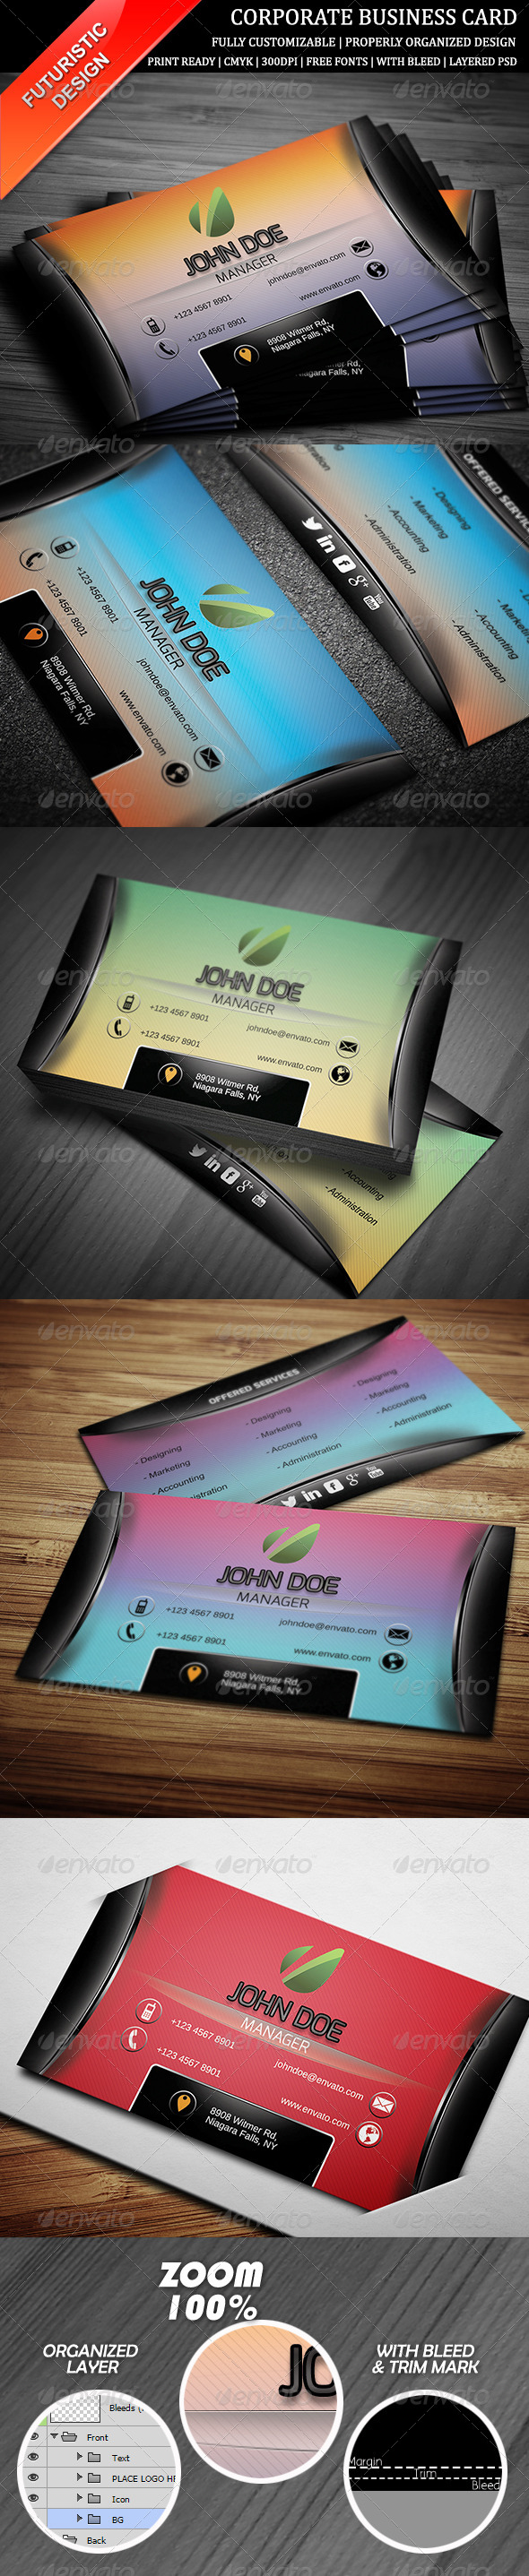 GraphicRiver Corporate Business Card 9 6493948